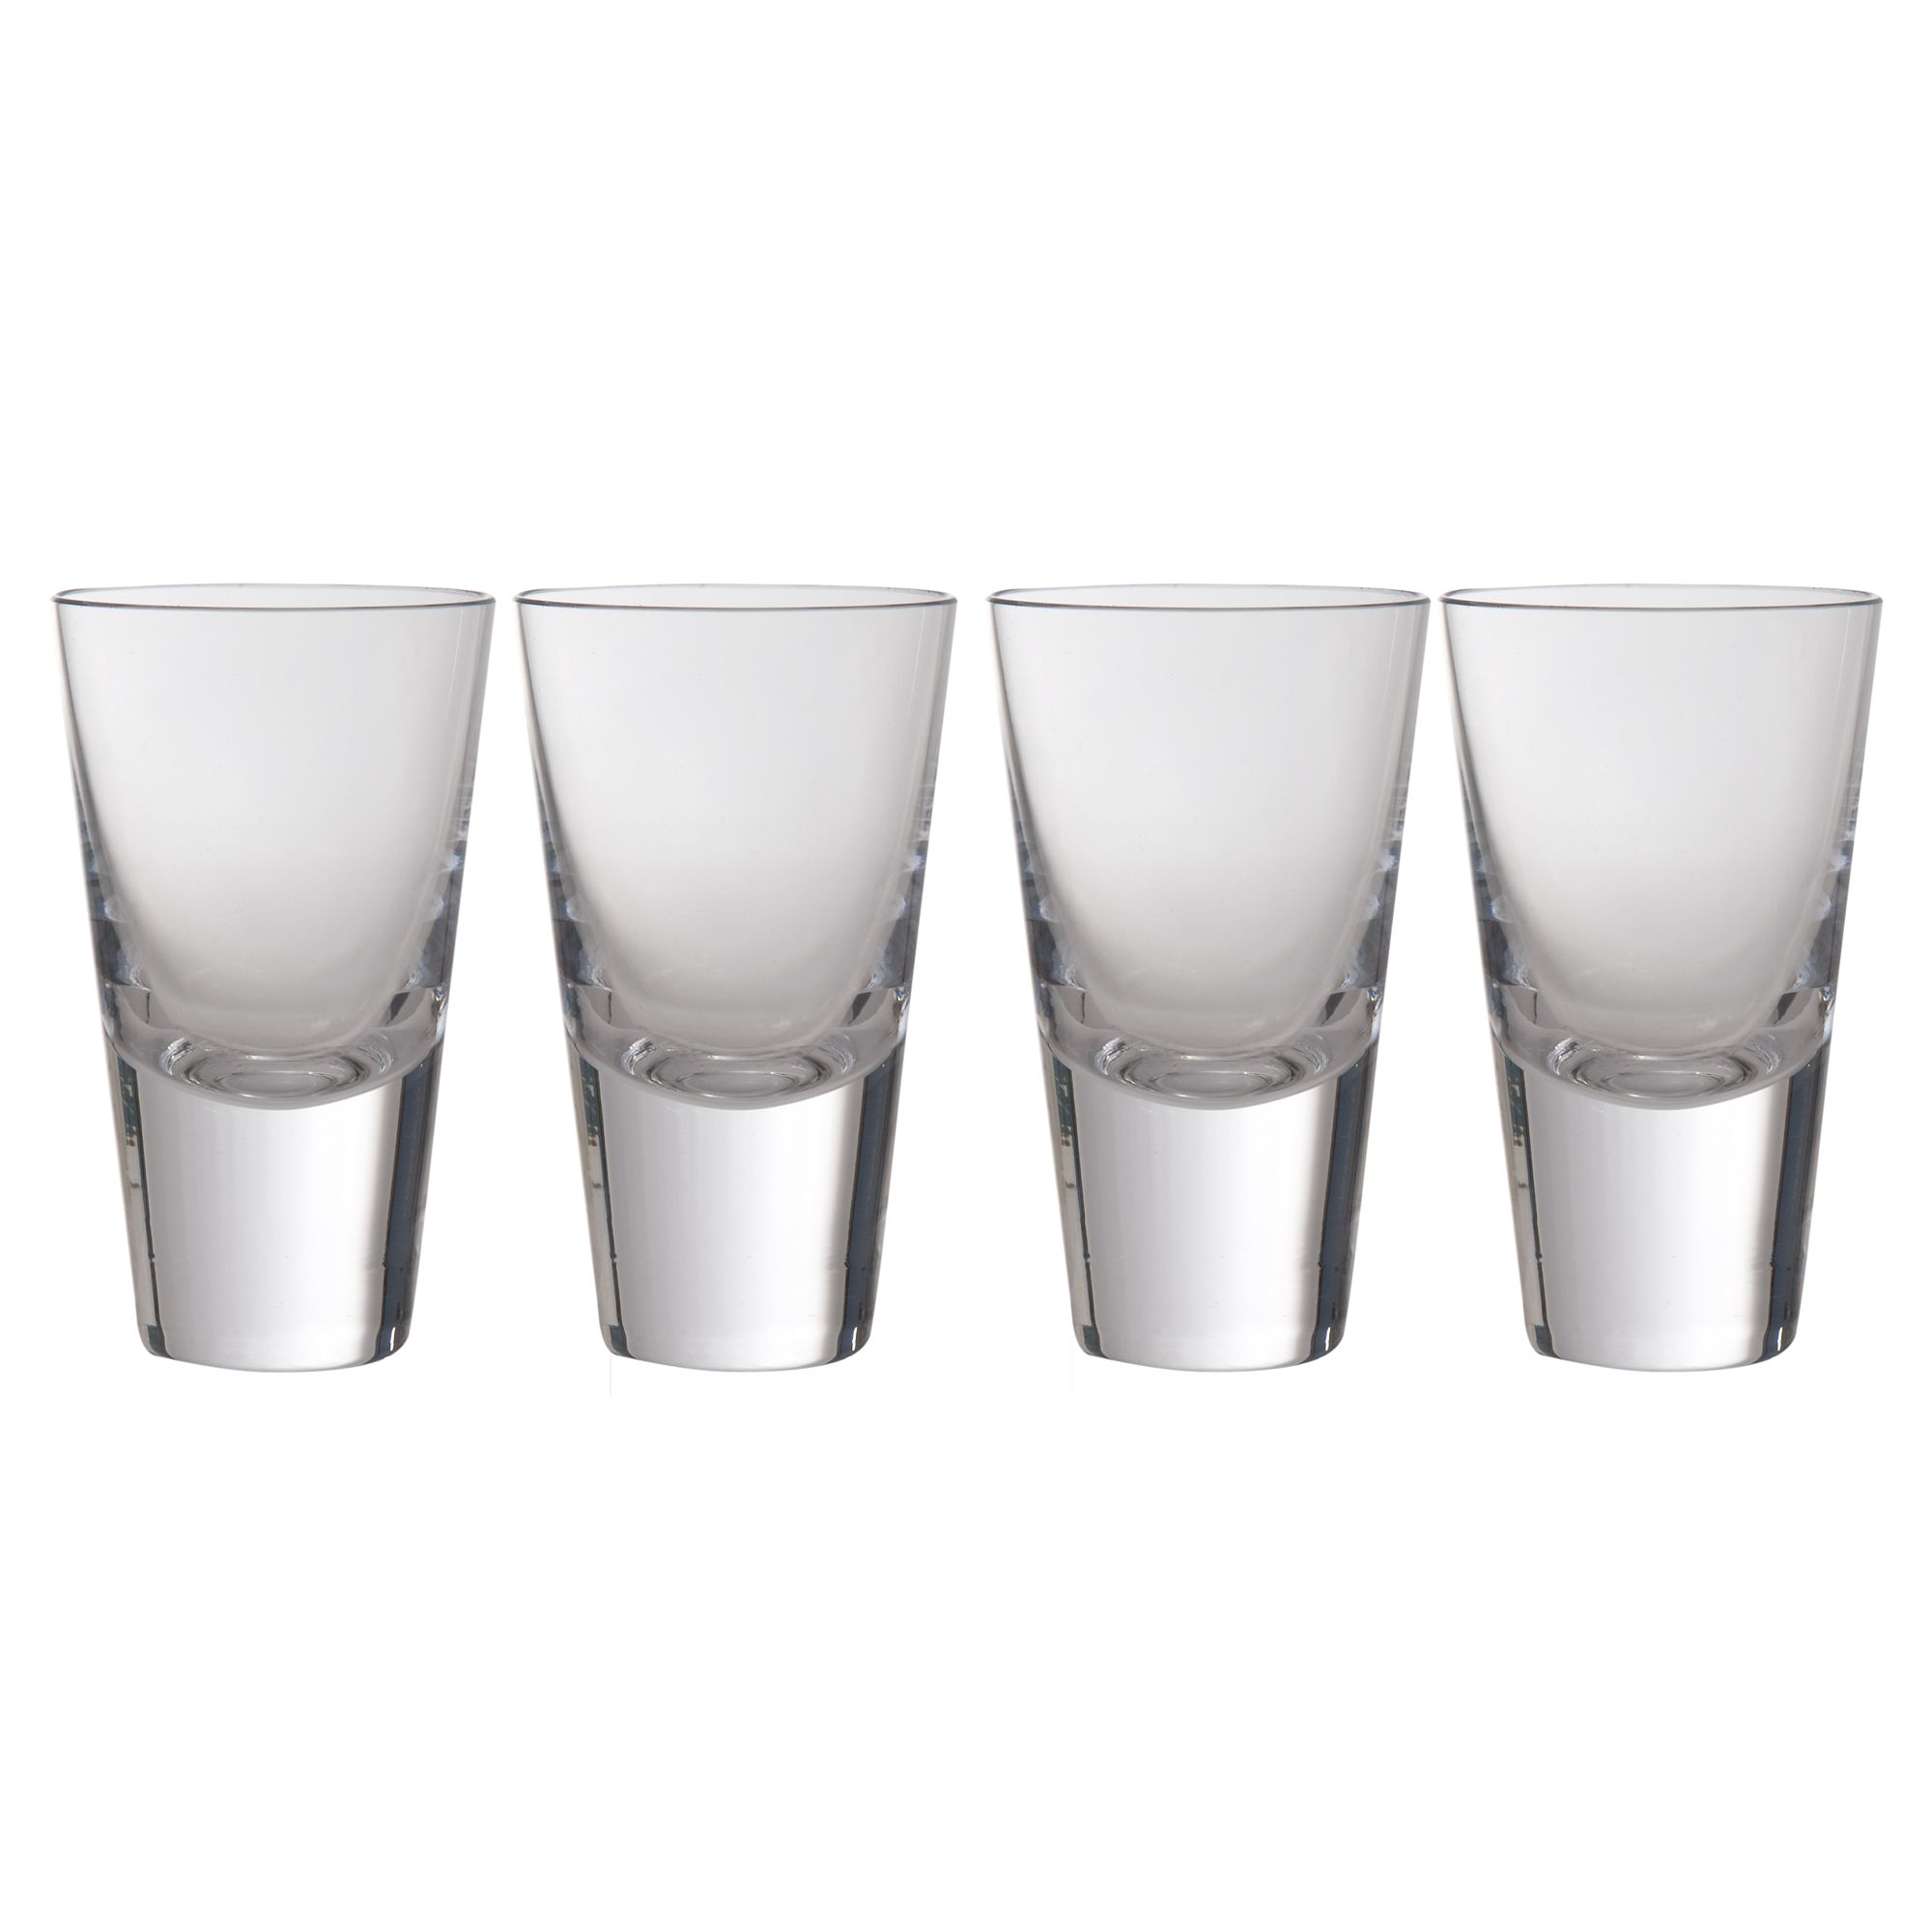 Bar collection shot glasses, set of 4